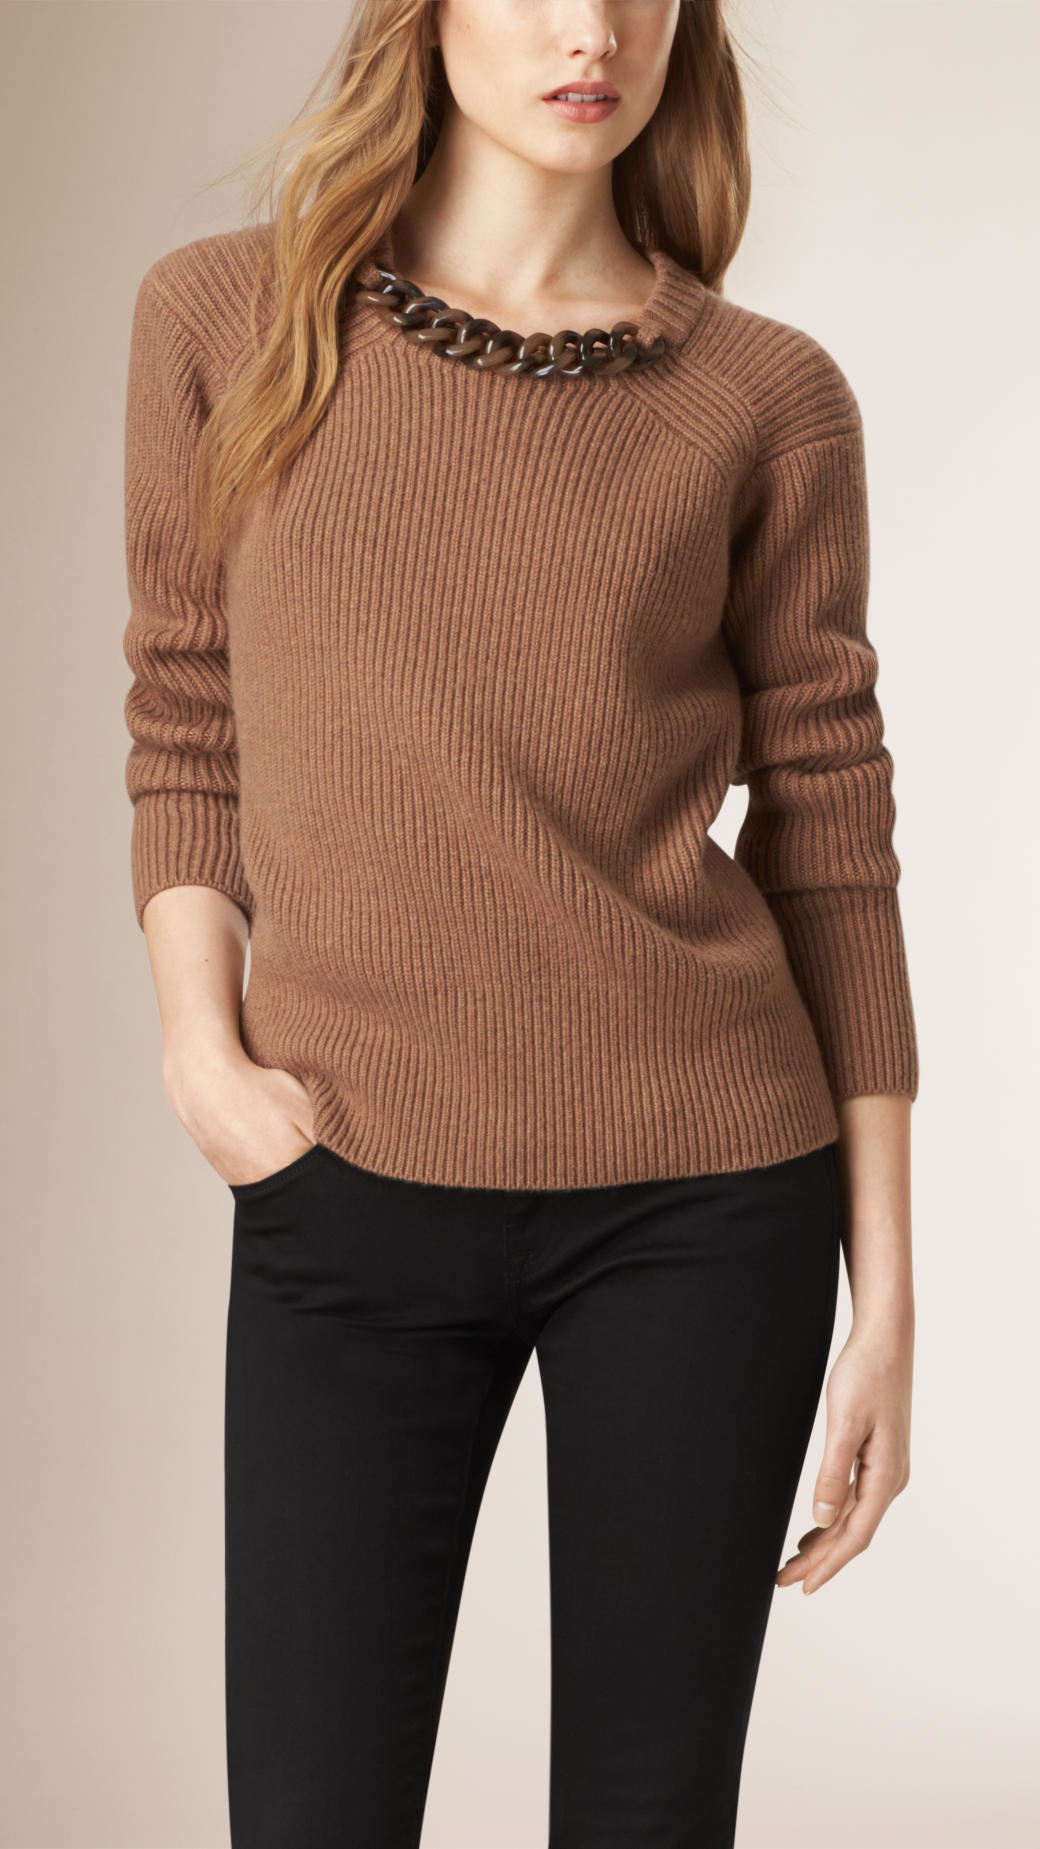 Burberry Chain Detail Wool Cashmere Sweater in Brown | Lyst